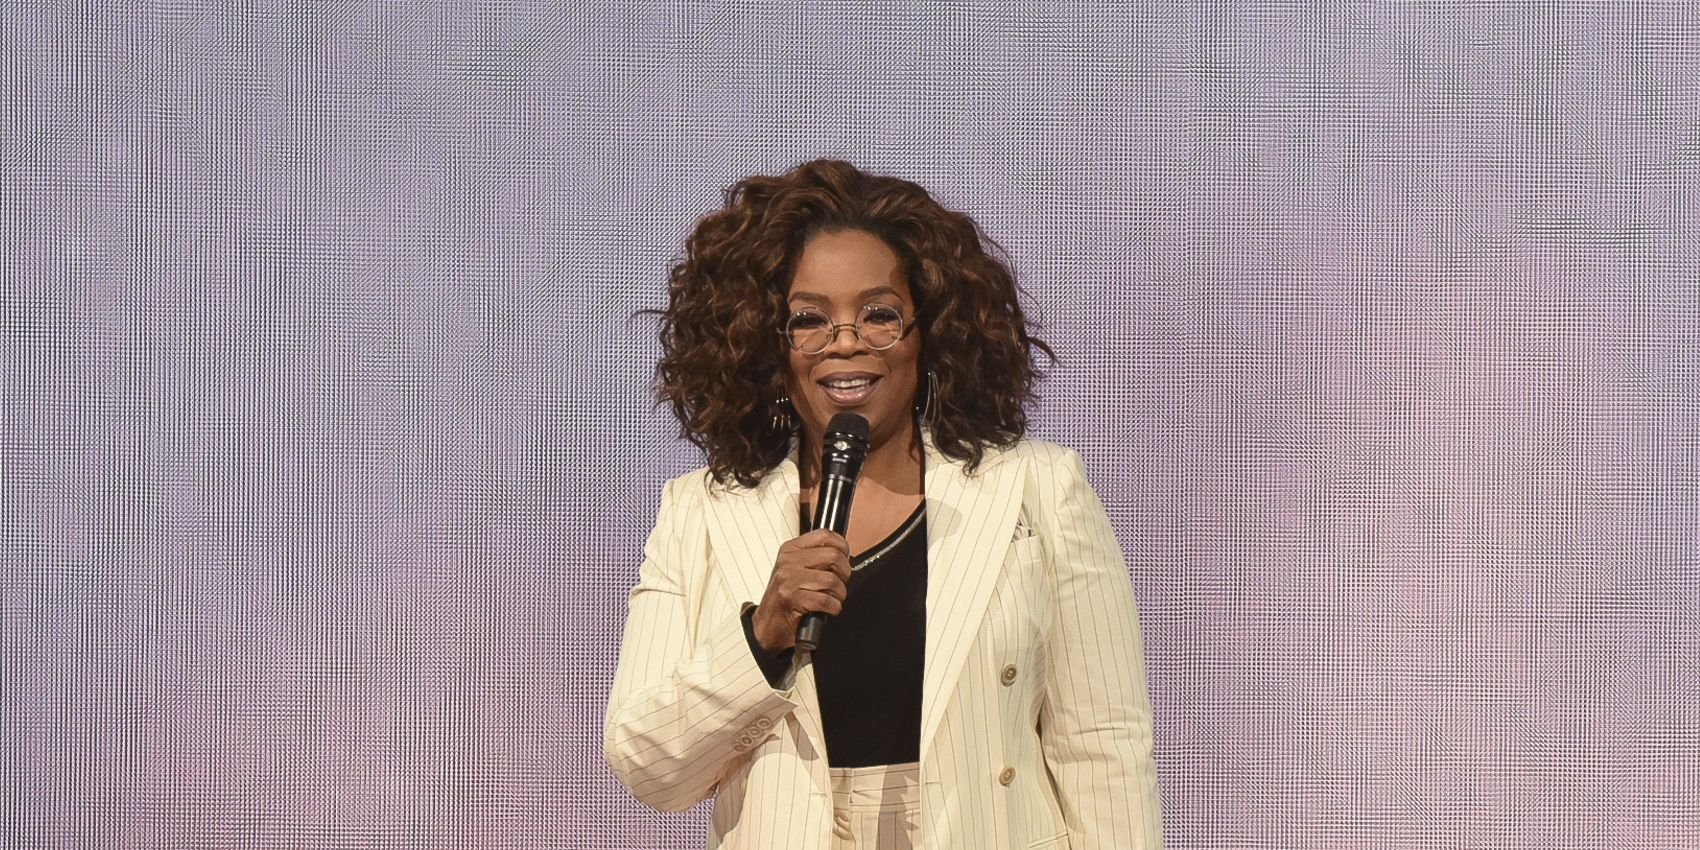 Facebook hosting virtual graduation with Oprah as commencement speaker